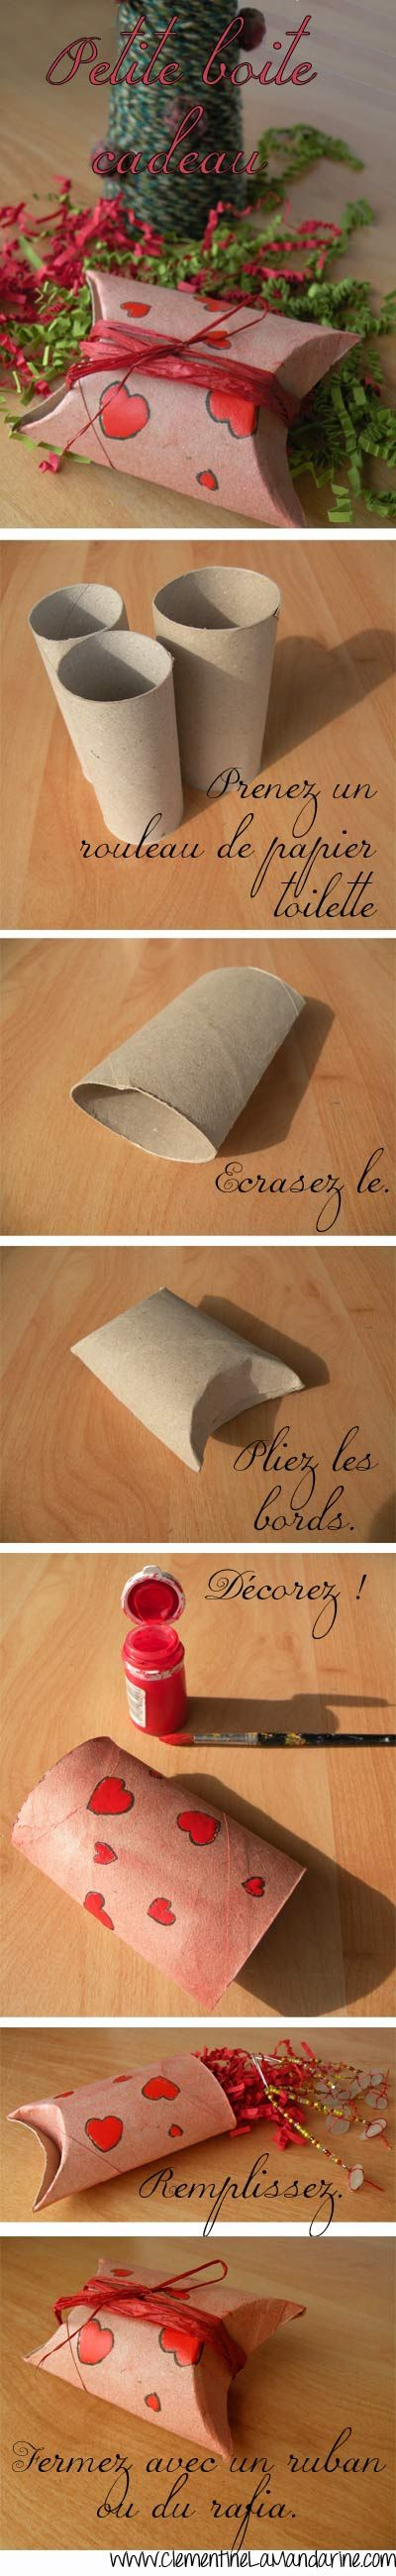 Toilet roll upcycling!